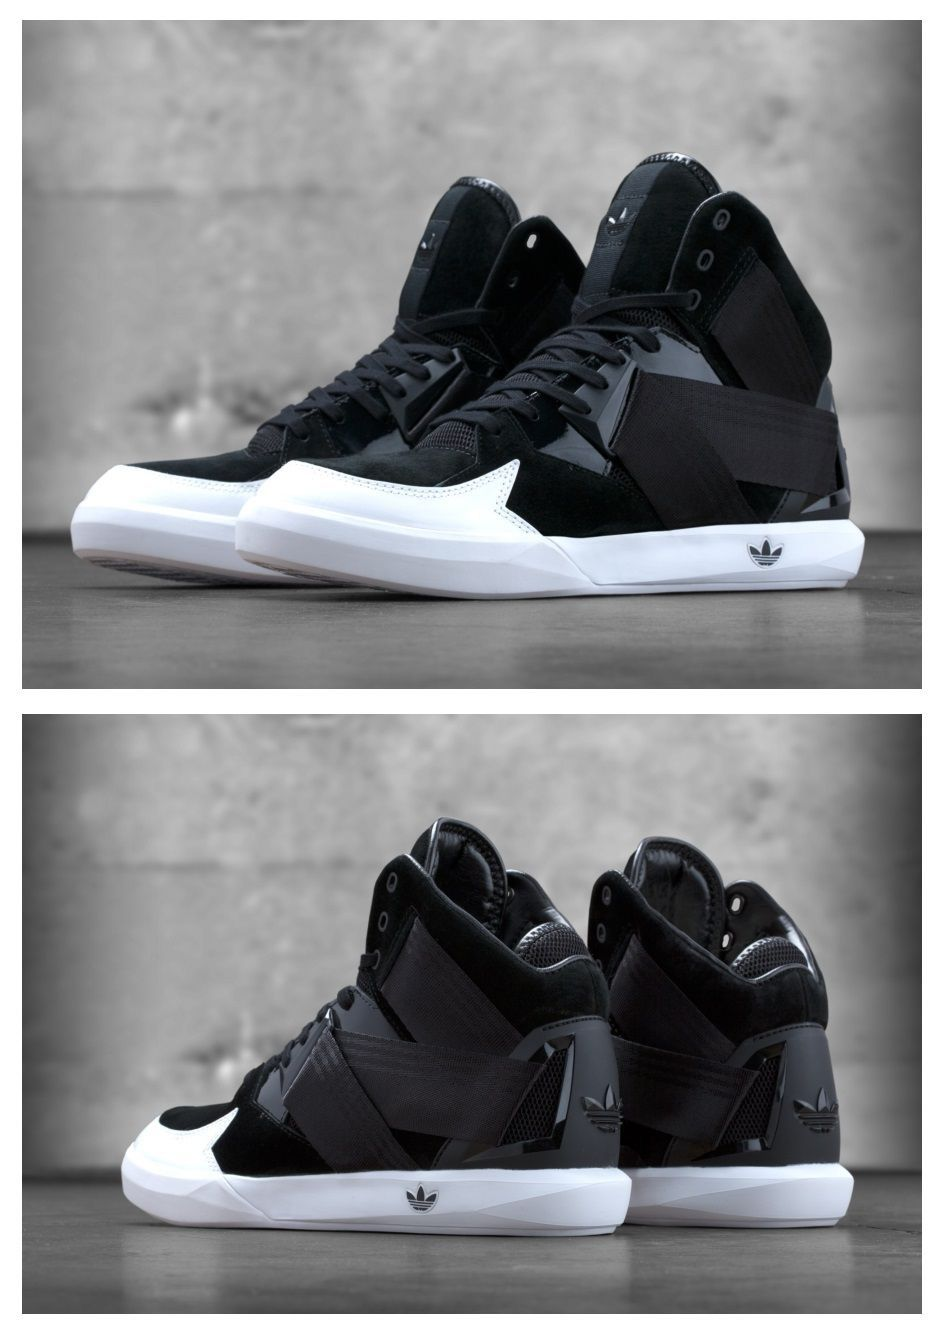 168fa40afe Adidas black and white high tops | shoes | Shoes, Nike Shoes ...